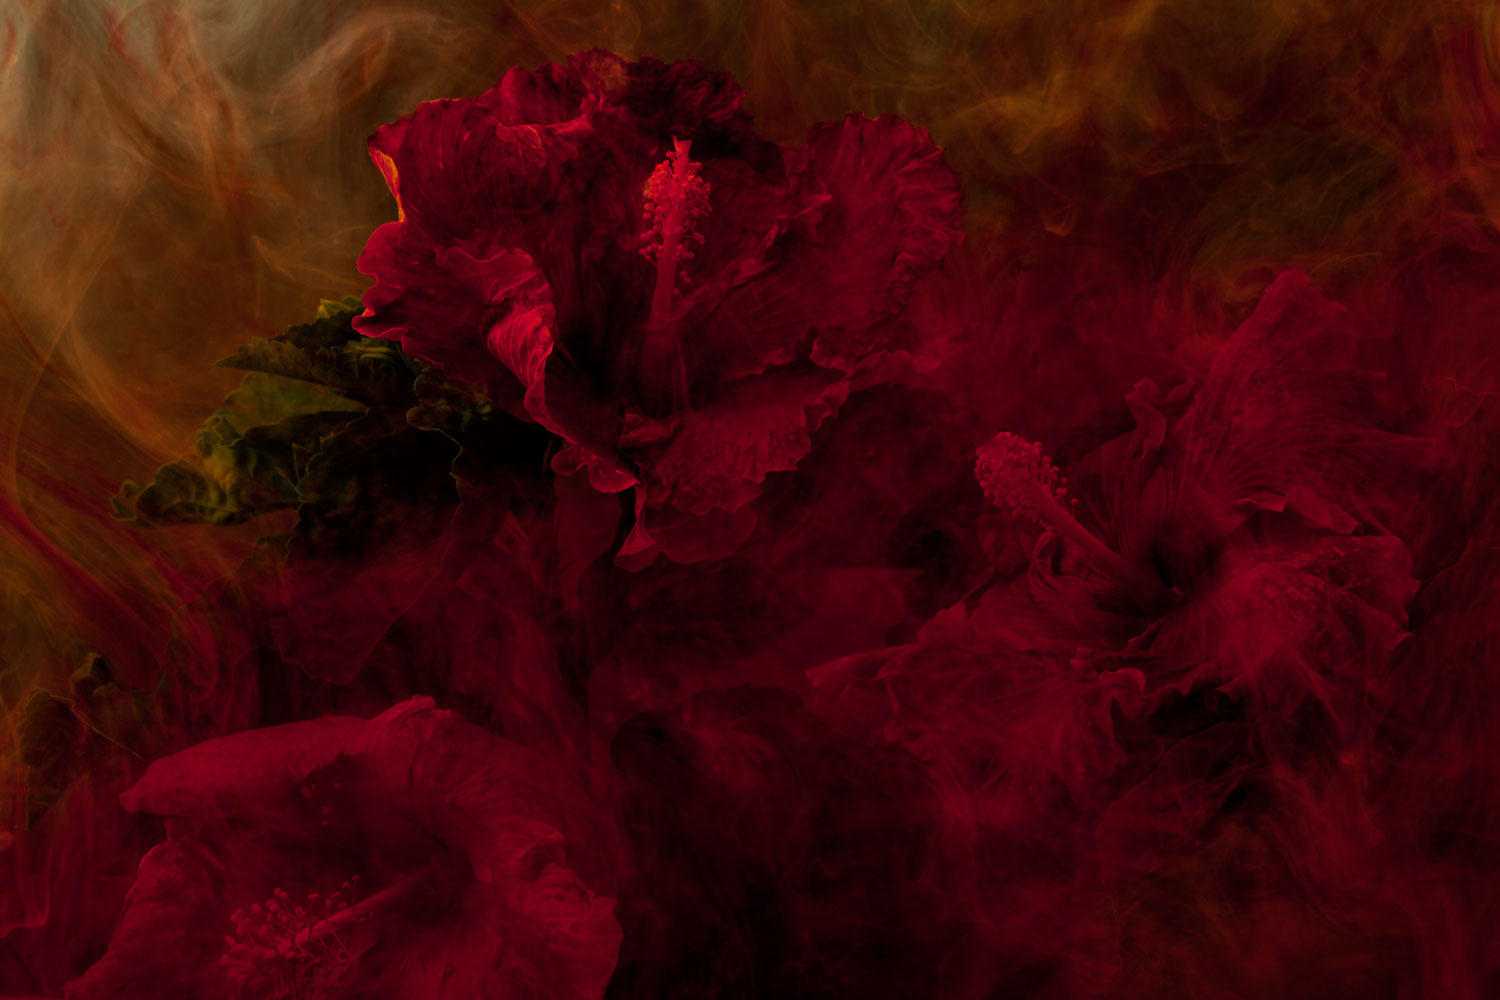 2011, Untitled, from the series Stamen